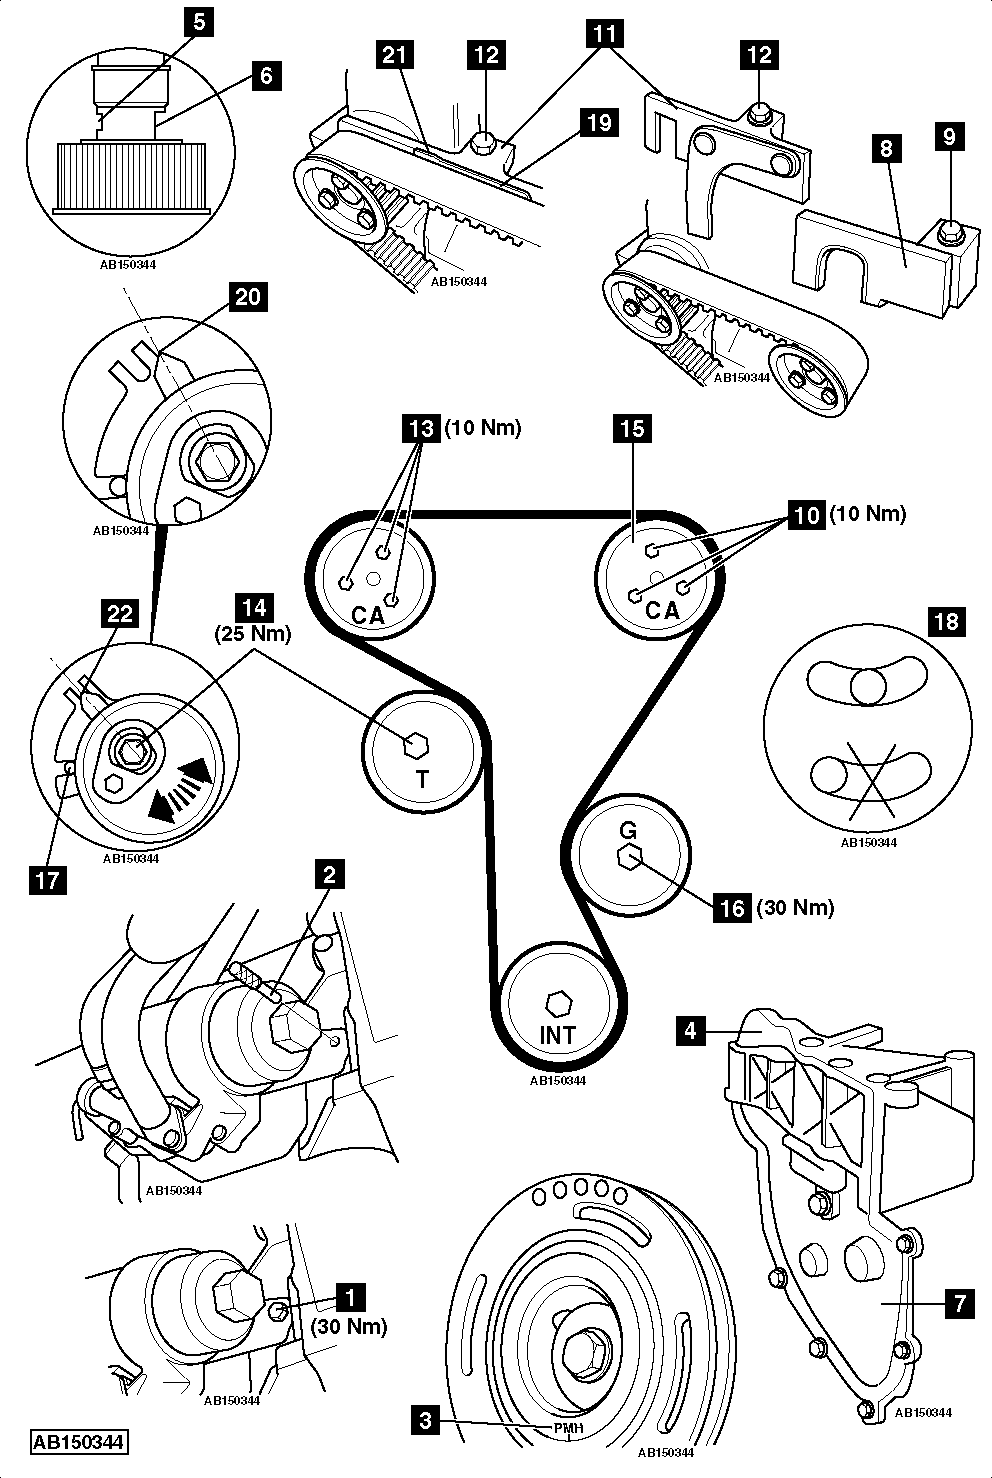 2008 mazda 3 wiring diagram with How To Replace Timing Belt Vauxhallopel Movano A 2 5 Dti on 563sa Nissan Datsun Frontier Se 2000 Frontier S Brake Lights furthermore 2005 Chrysler Pacifica V6 3 8l Serpentine Belt Diagram further Mazda Rx8 Ignition Wiring Diagram furthermore Ford Fiesta 2008 moreover How To Replace Timing Belt Vauxhallopel Movano A 2 5 Dti.